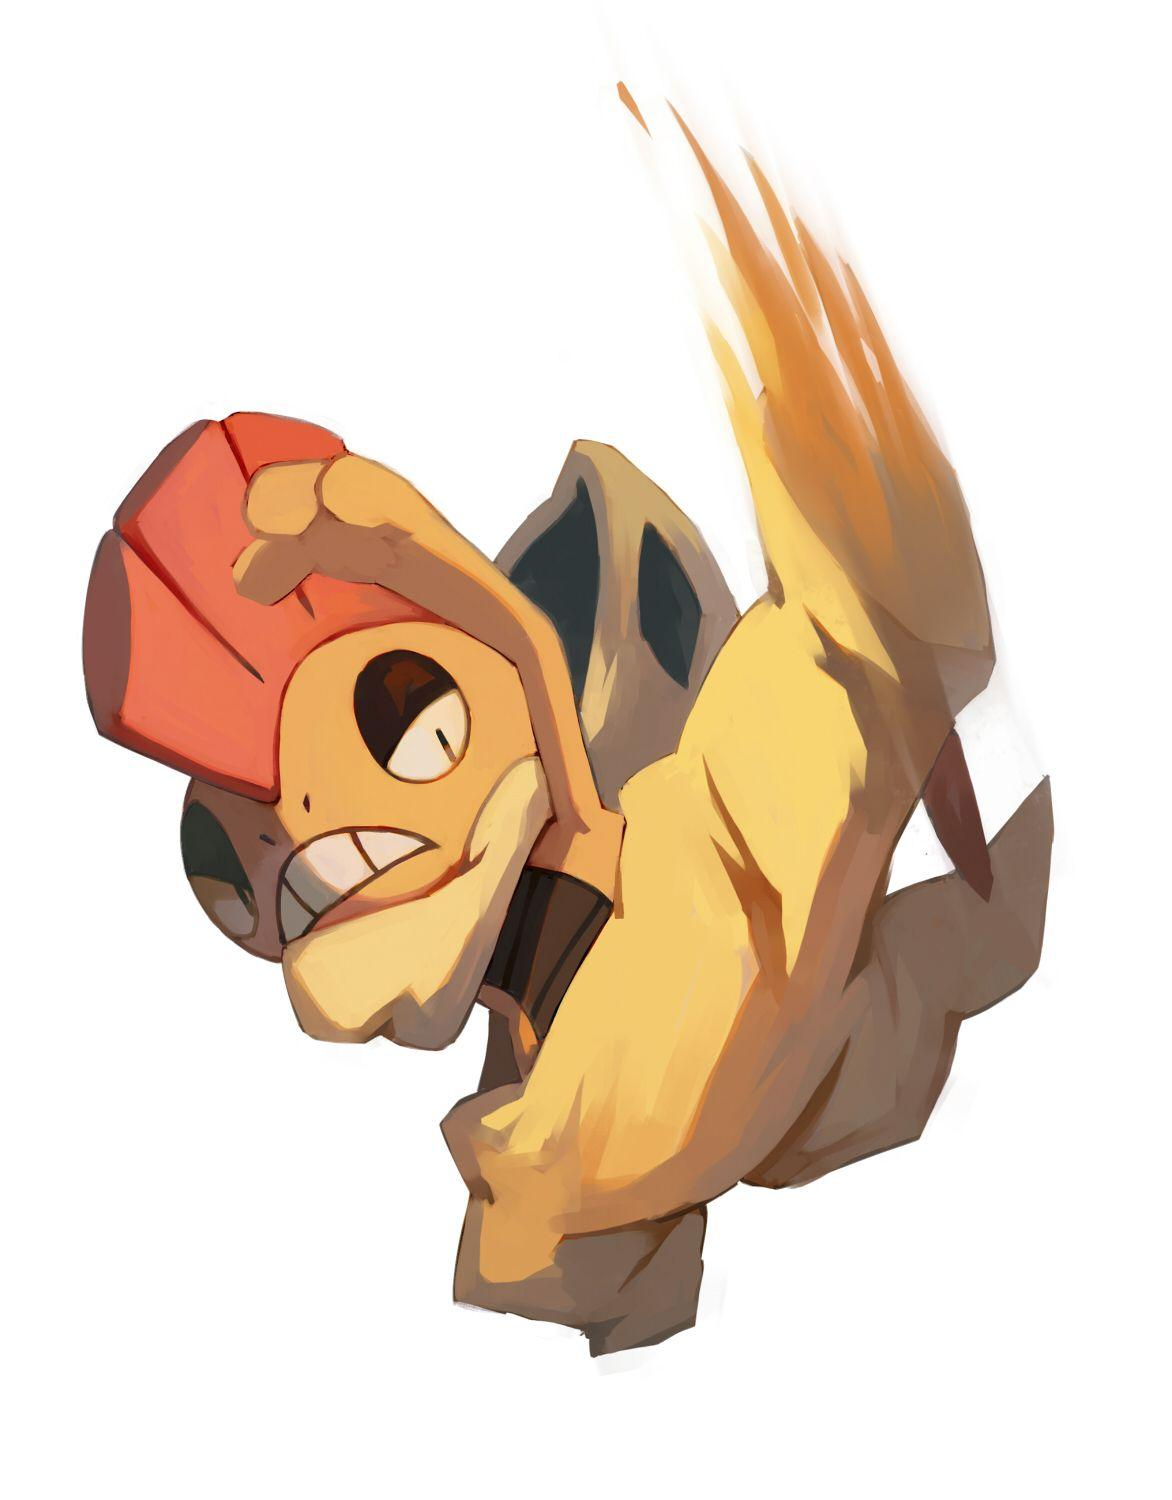 scrafty | Explore scrafty on DeviantArt